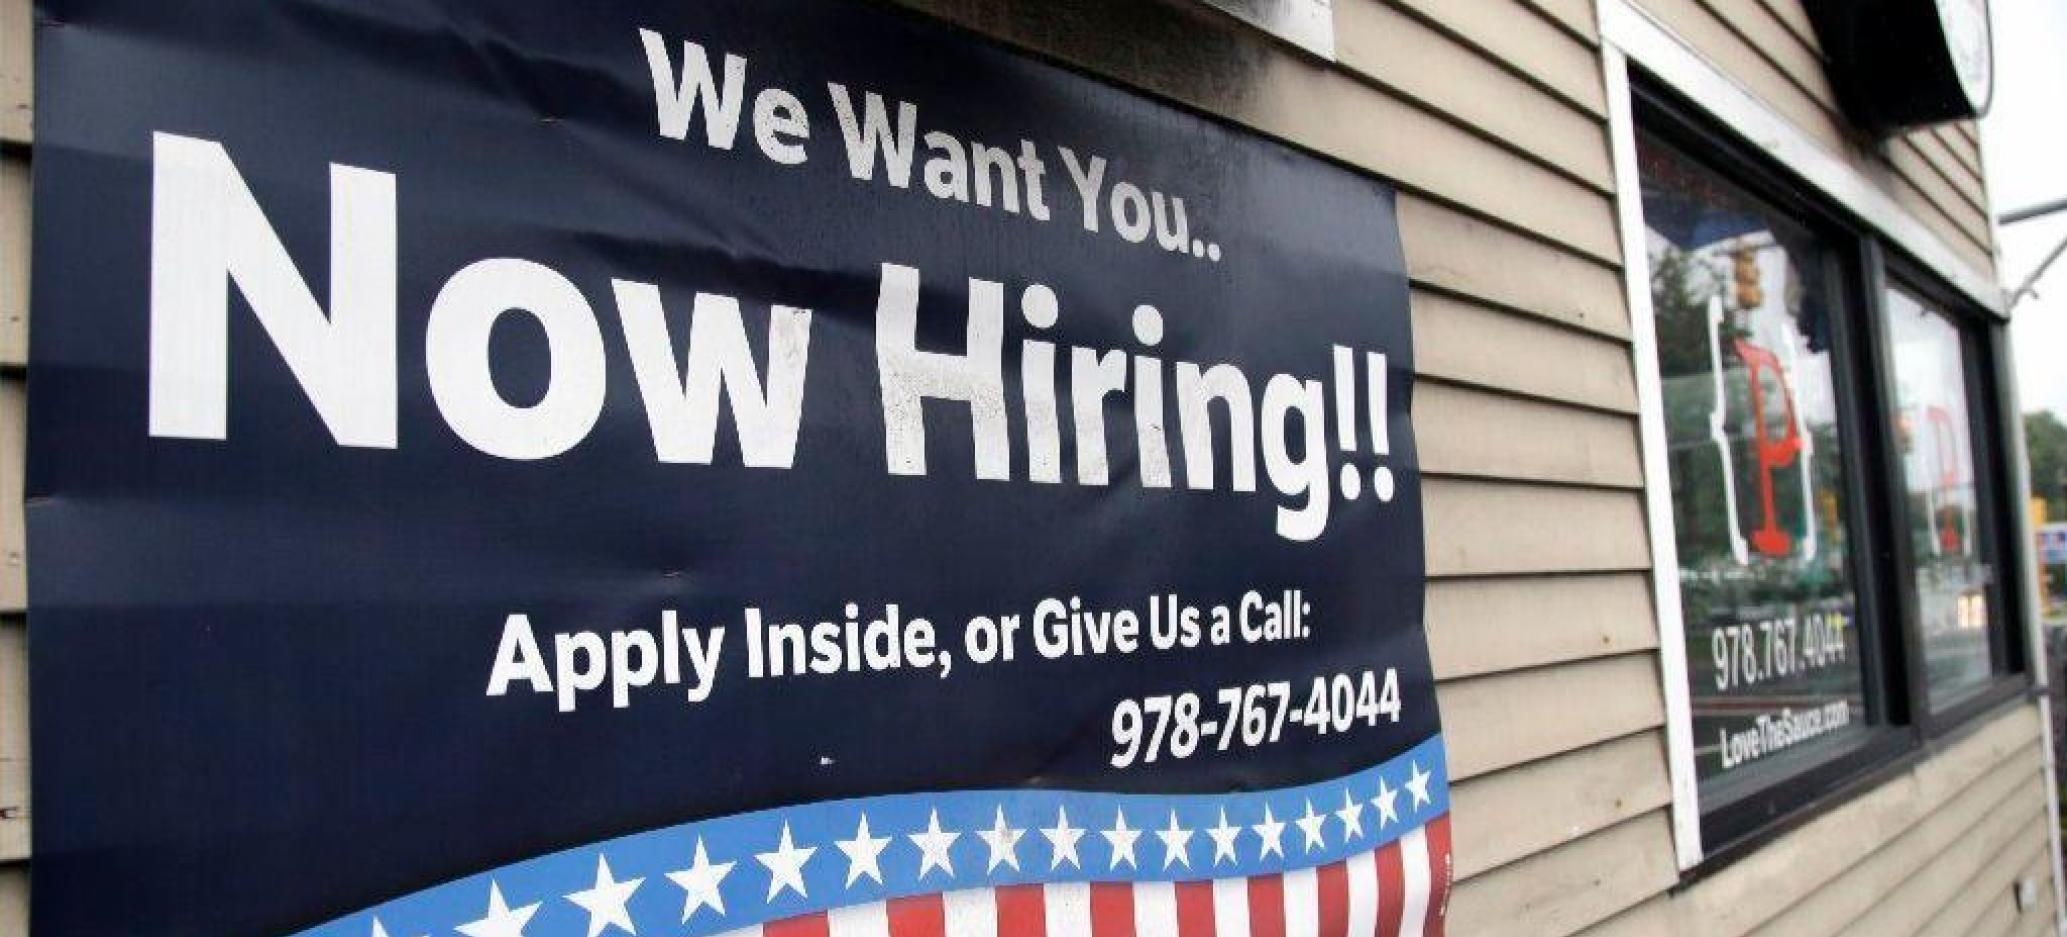 155,000 Jobs Were Created in the US in November